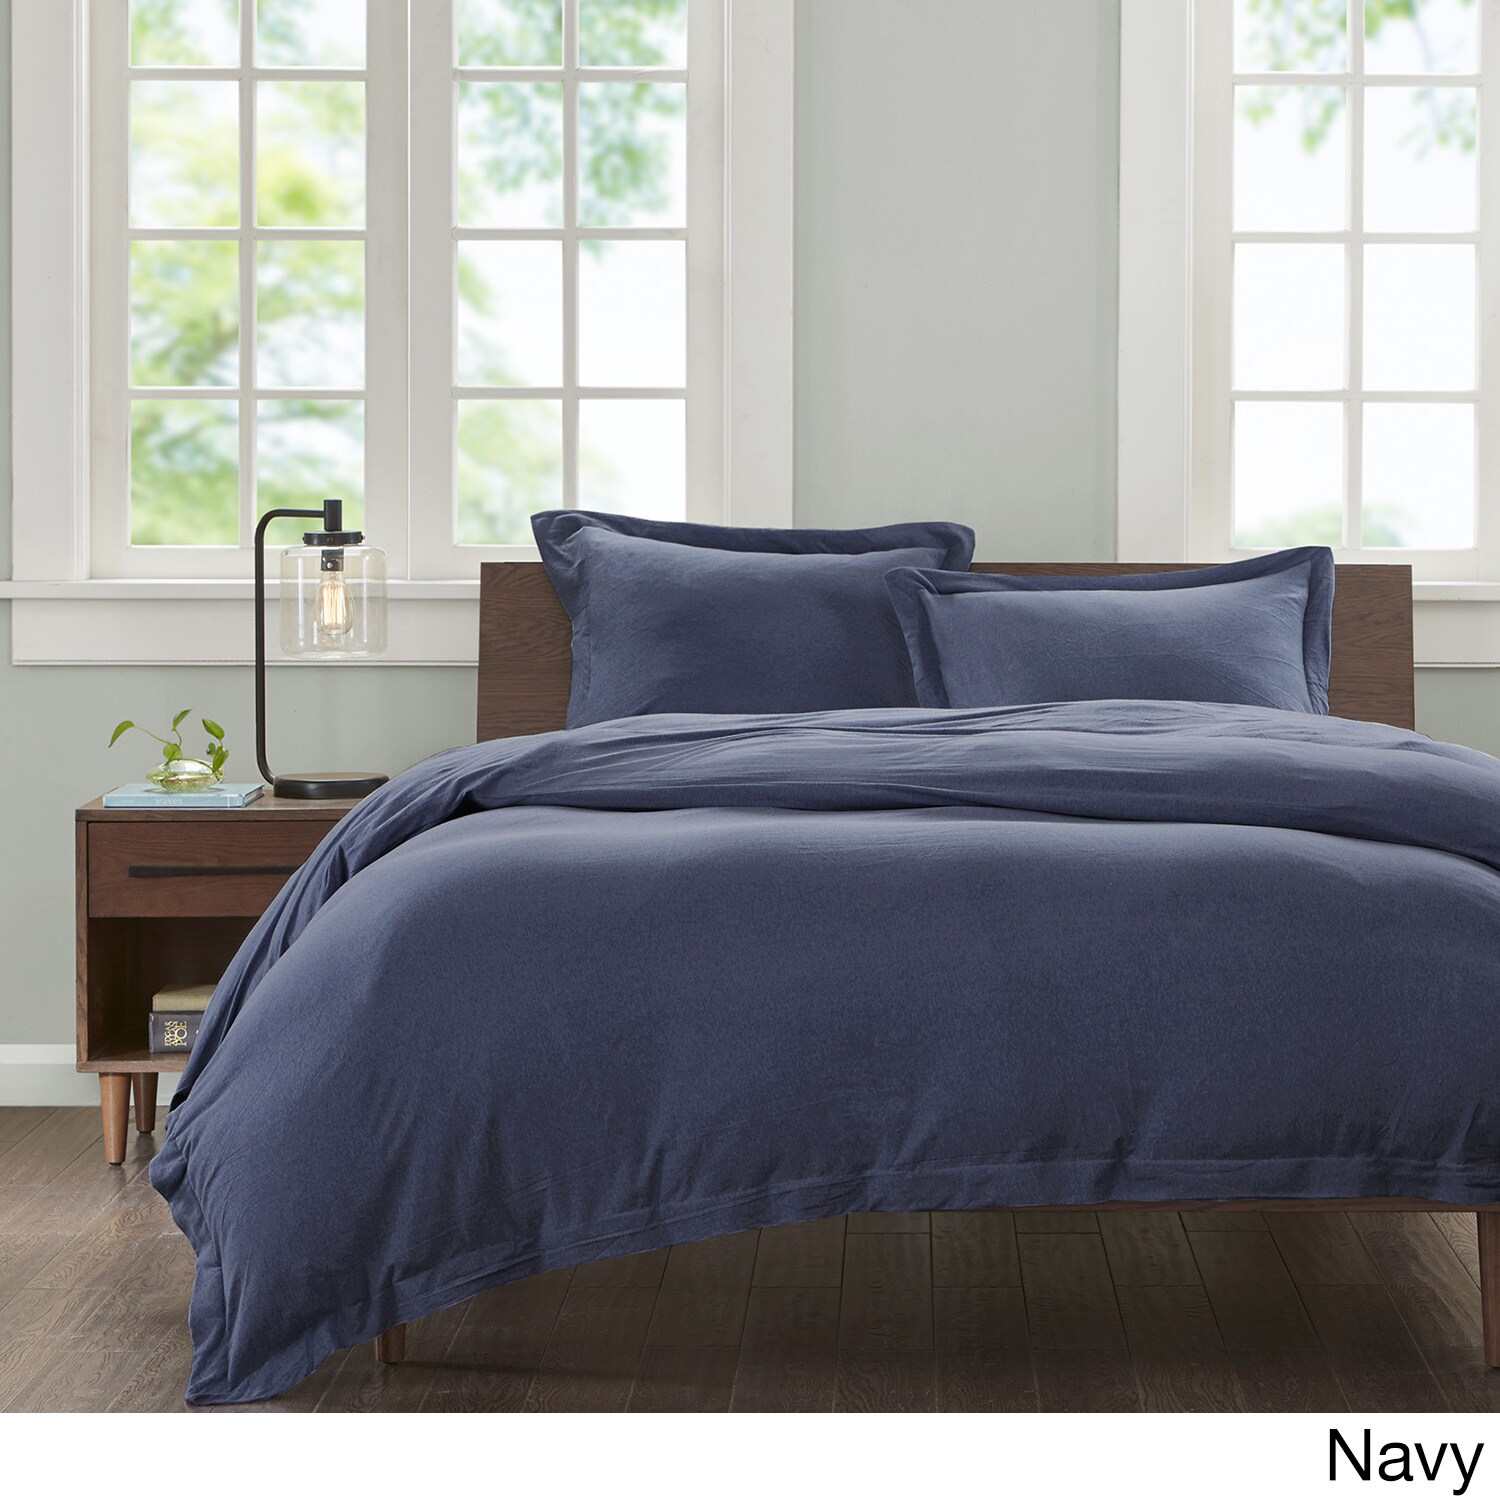 Carbon Loft Hammond Jersey Cotton 3 Piece Duvet Cover Set Free Shipping On Orders Over 45 11901495